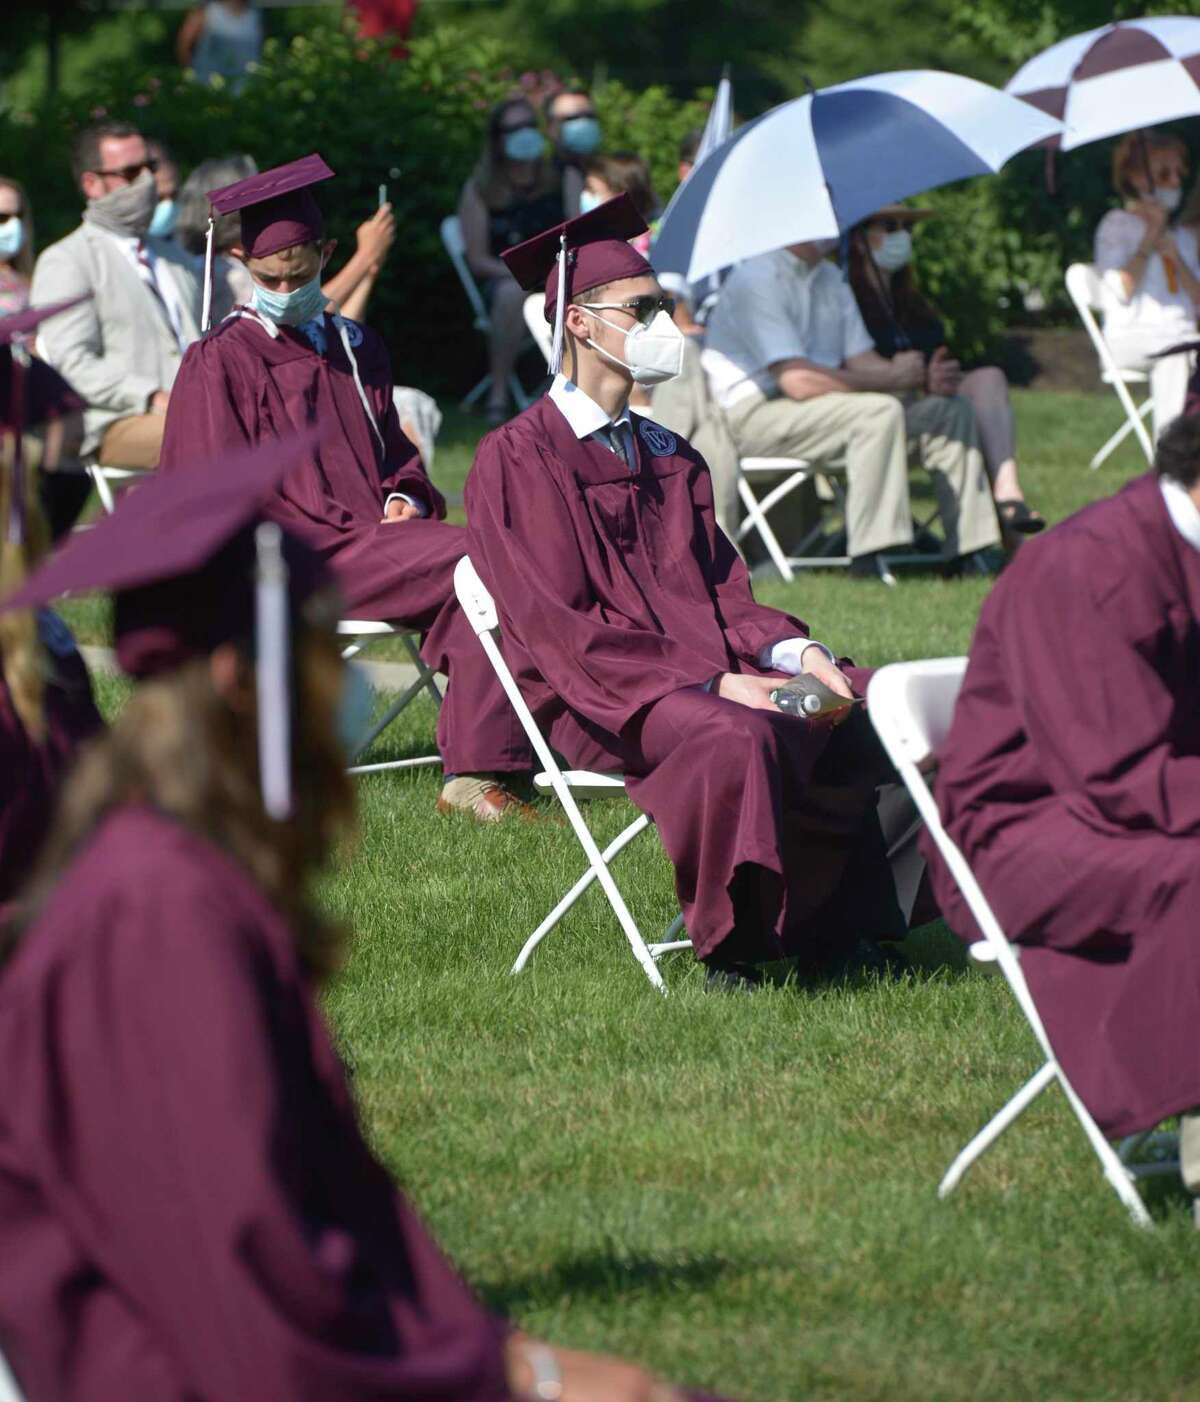 Photographs from the Wooster School 2020 Commencement Exercises, Monday, July 6, 2020, on the school campus, Danbury, Conn.